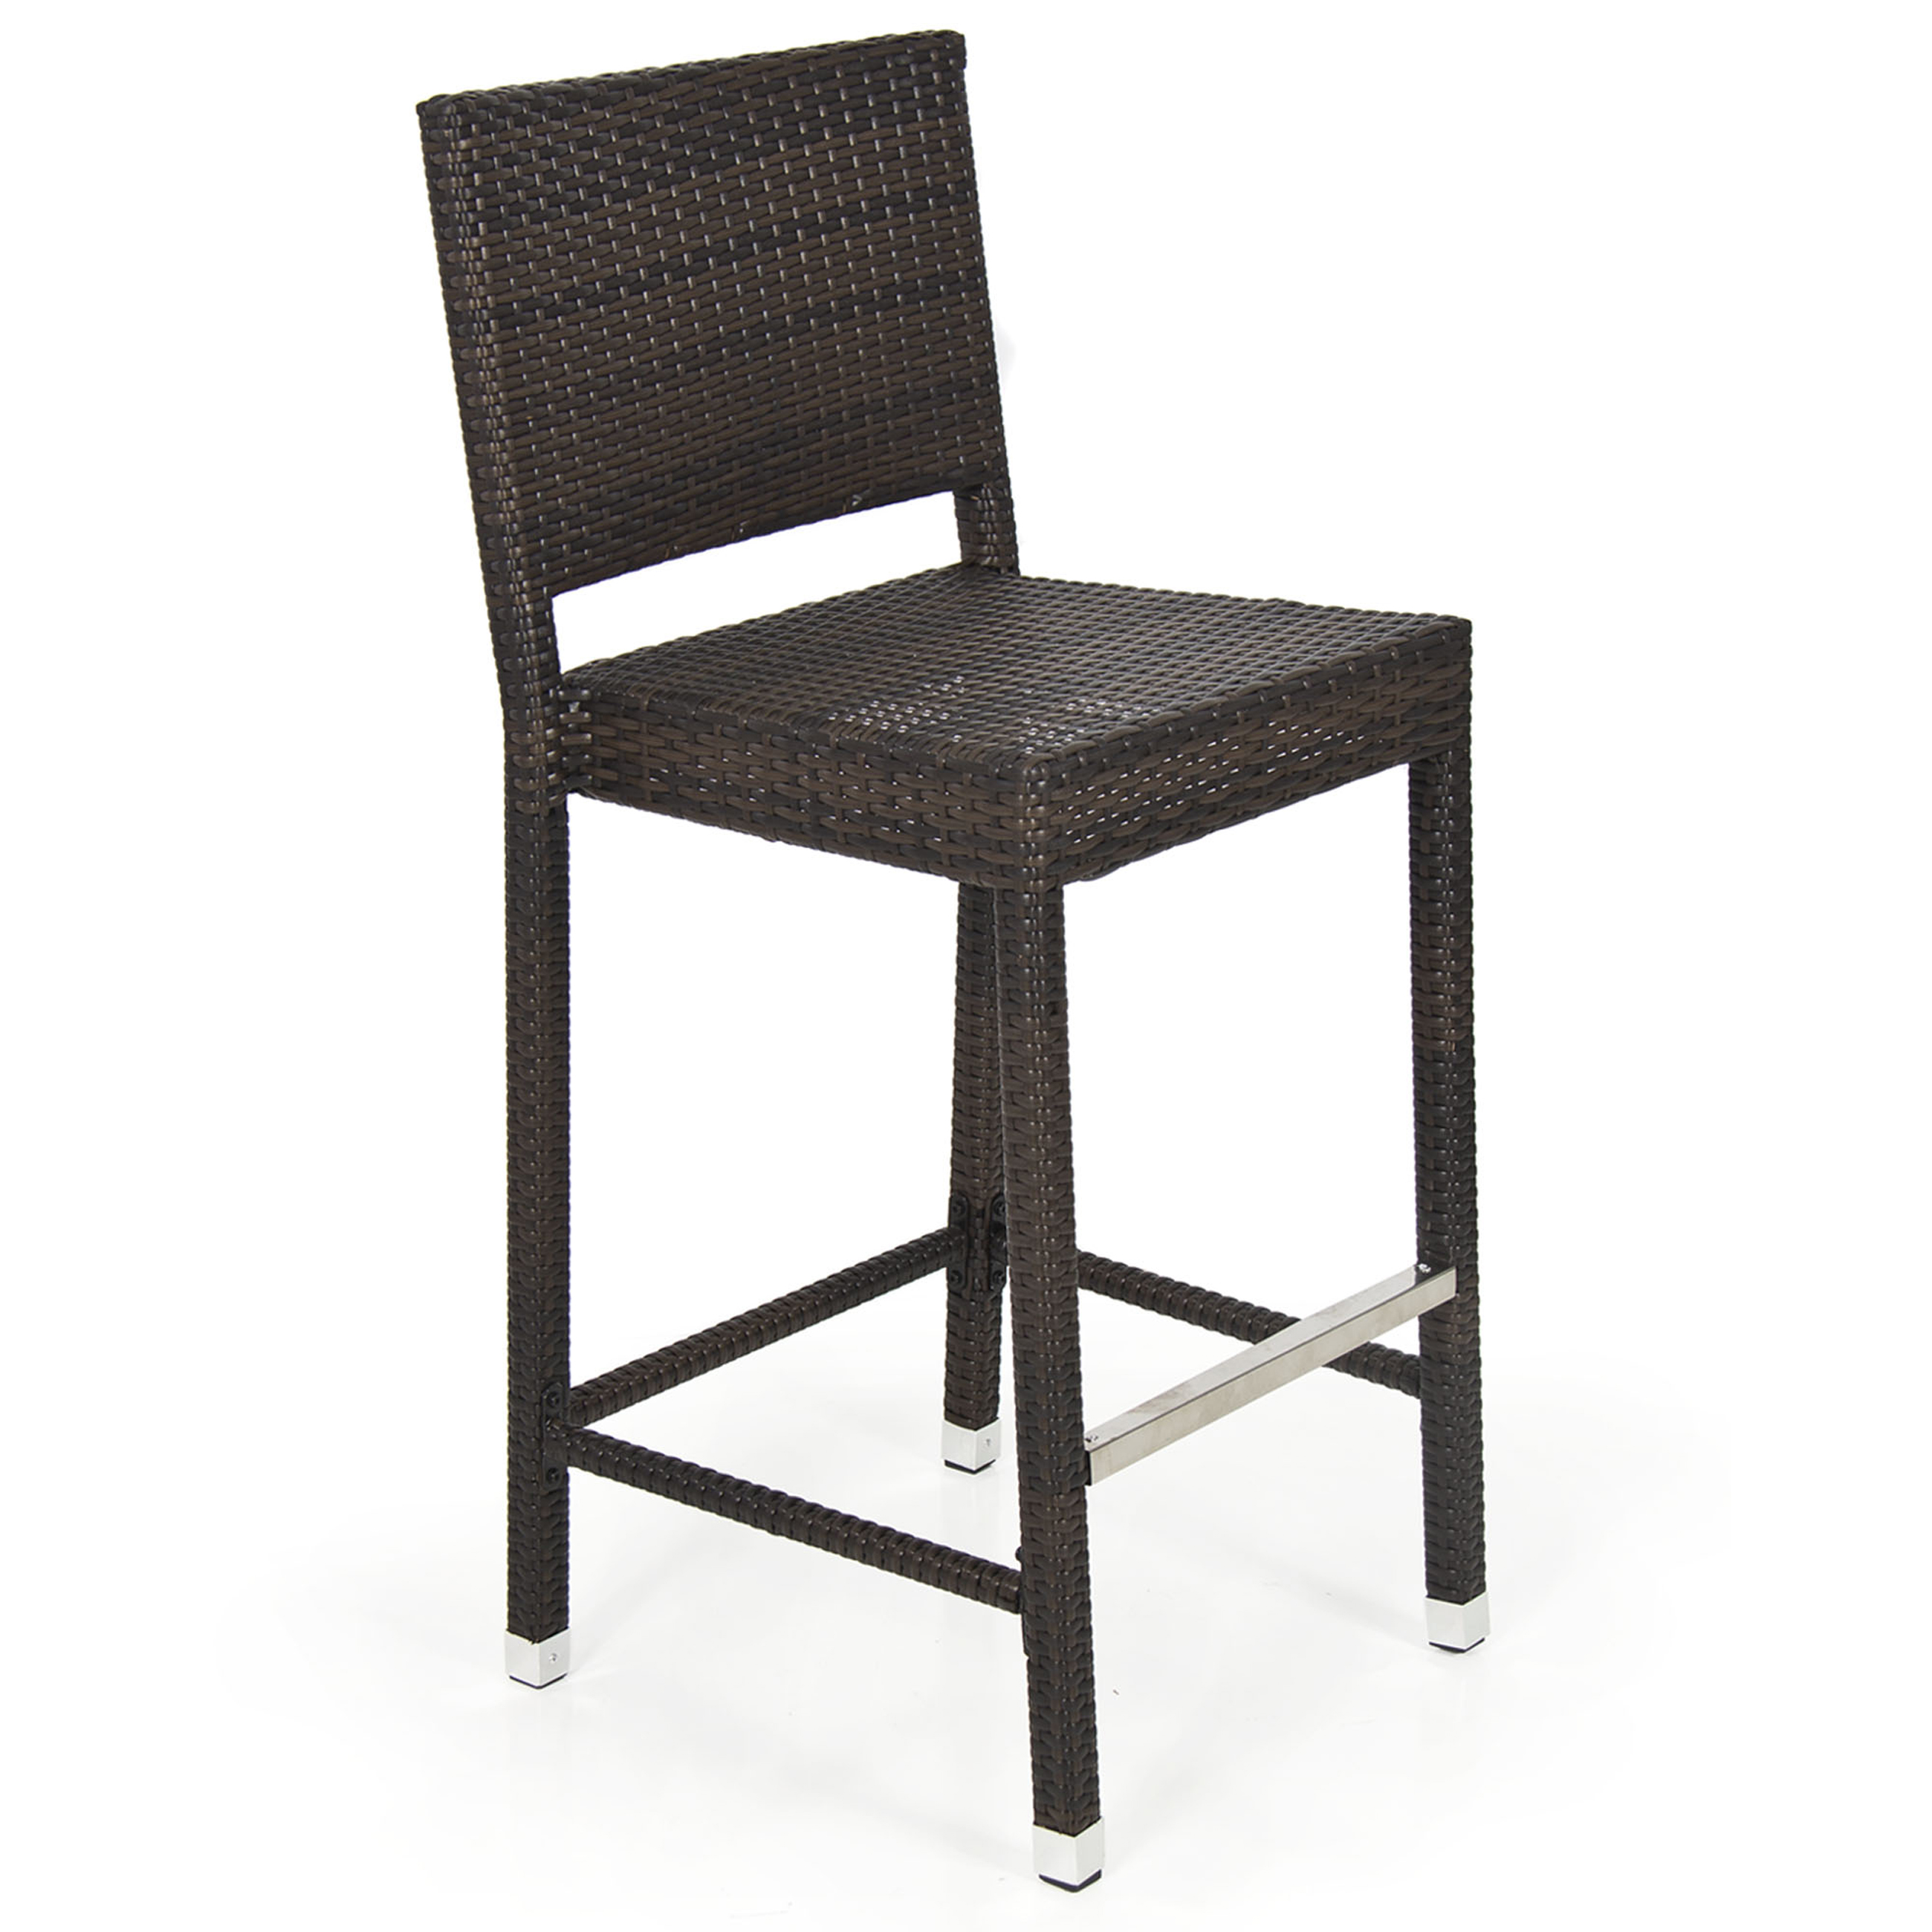 Outdoor Wicker Barstool All Weather Brown Patio Furniture New Bar Stool